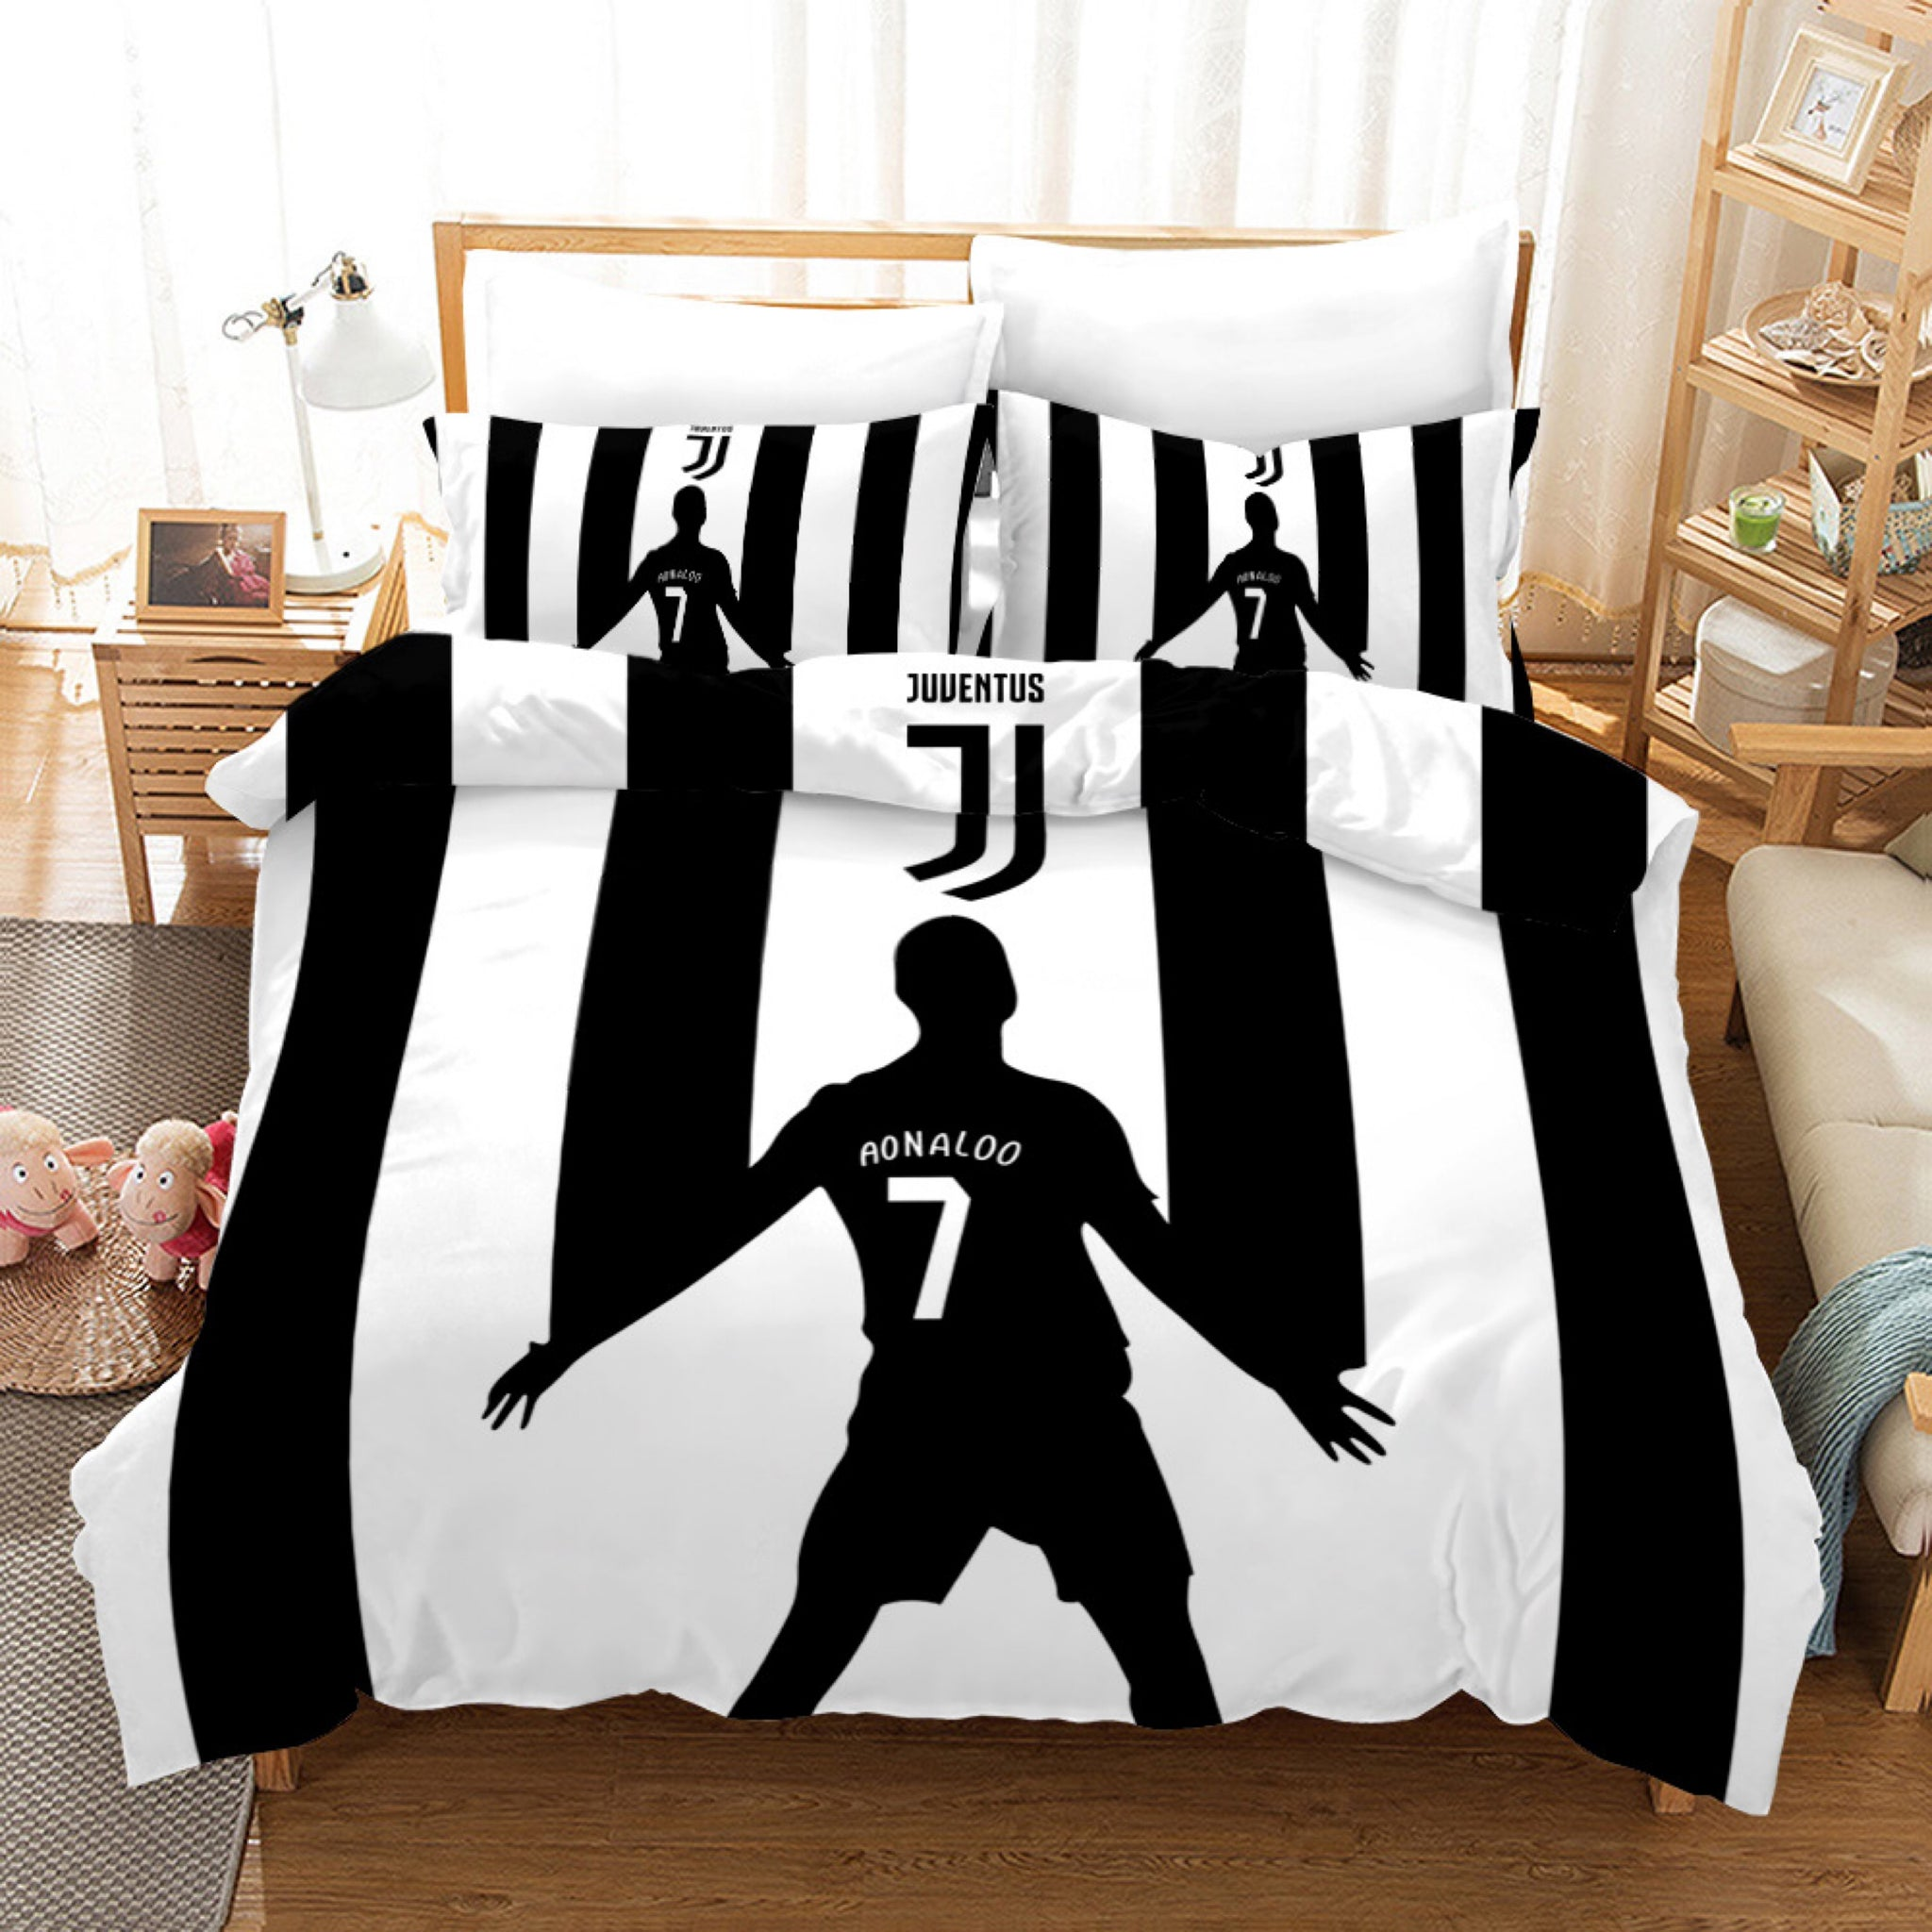 Cr7 Ronaldo Juventus Forza Soccer 5 Duvet Cover Quilt Cover Pillowcas Bedding Picky